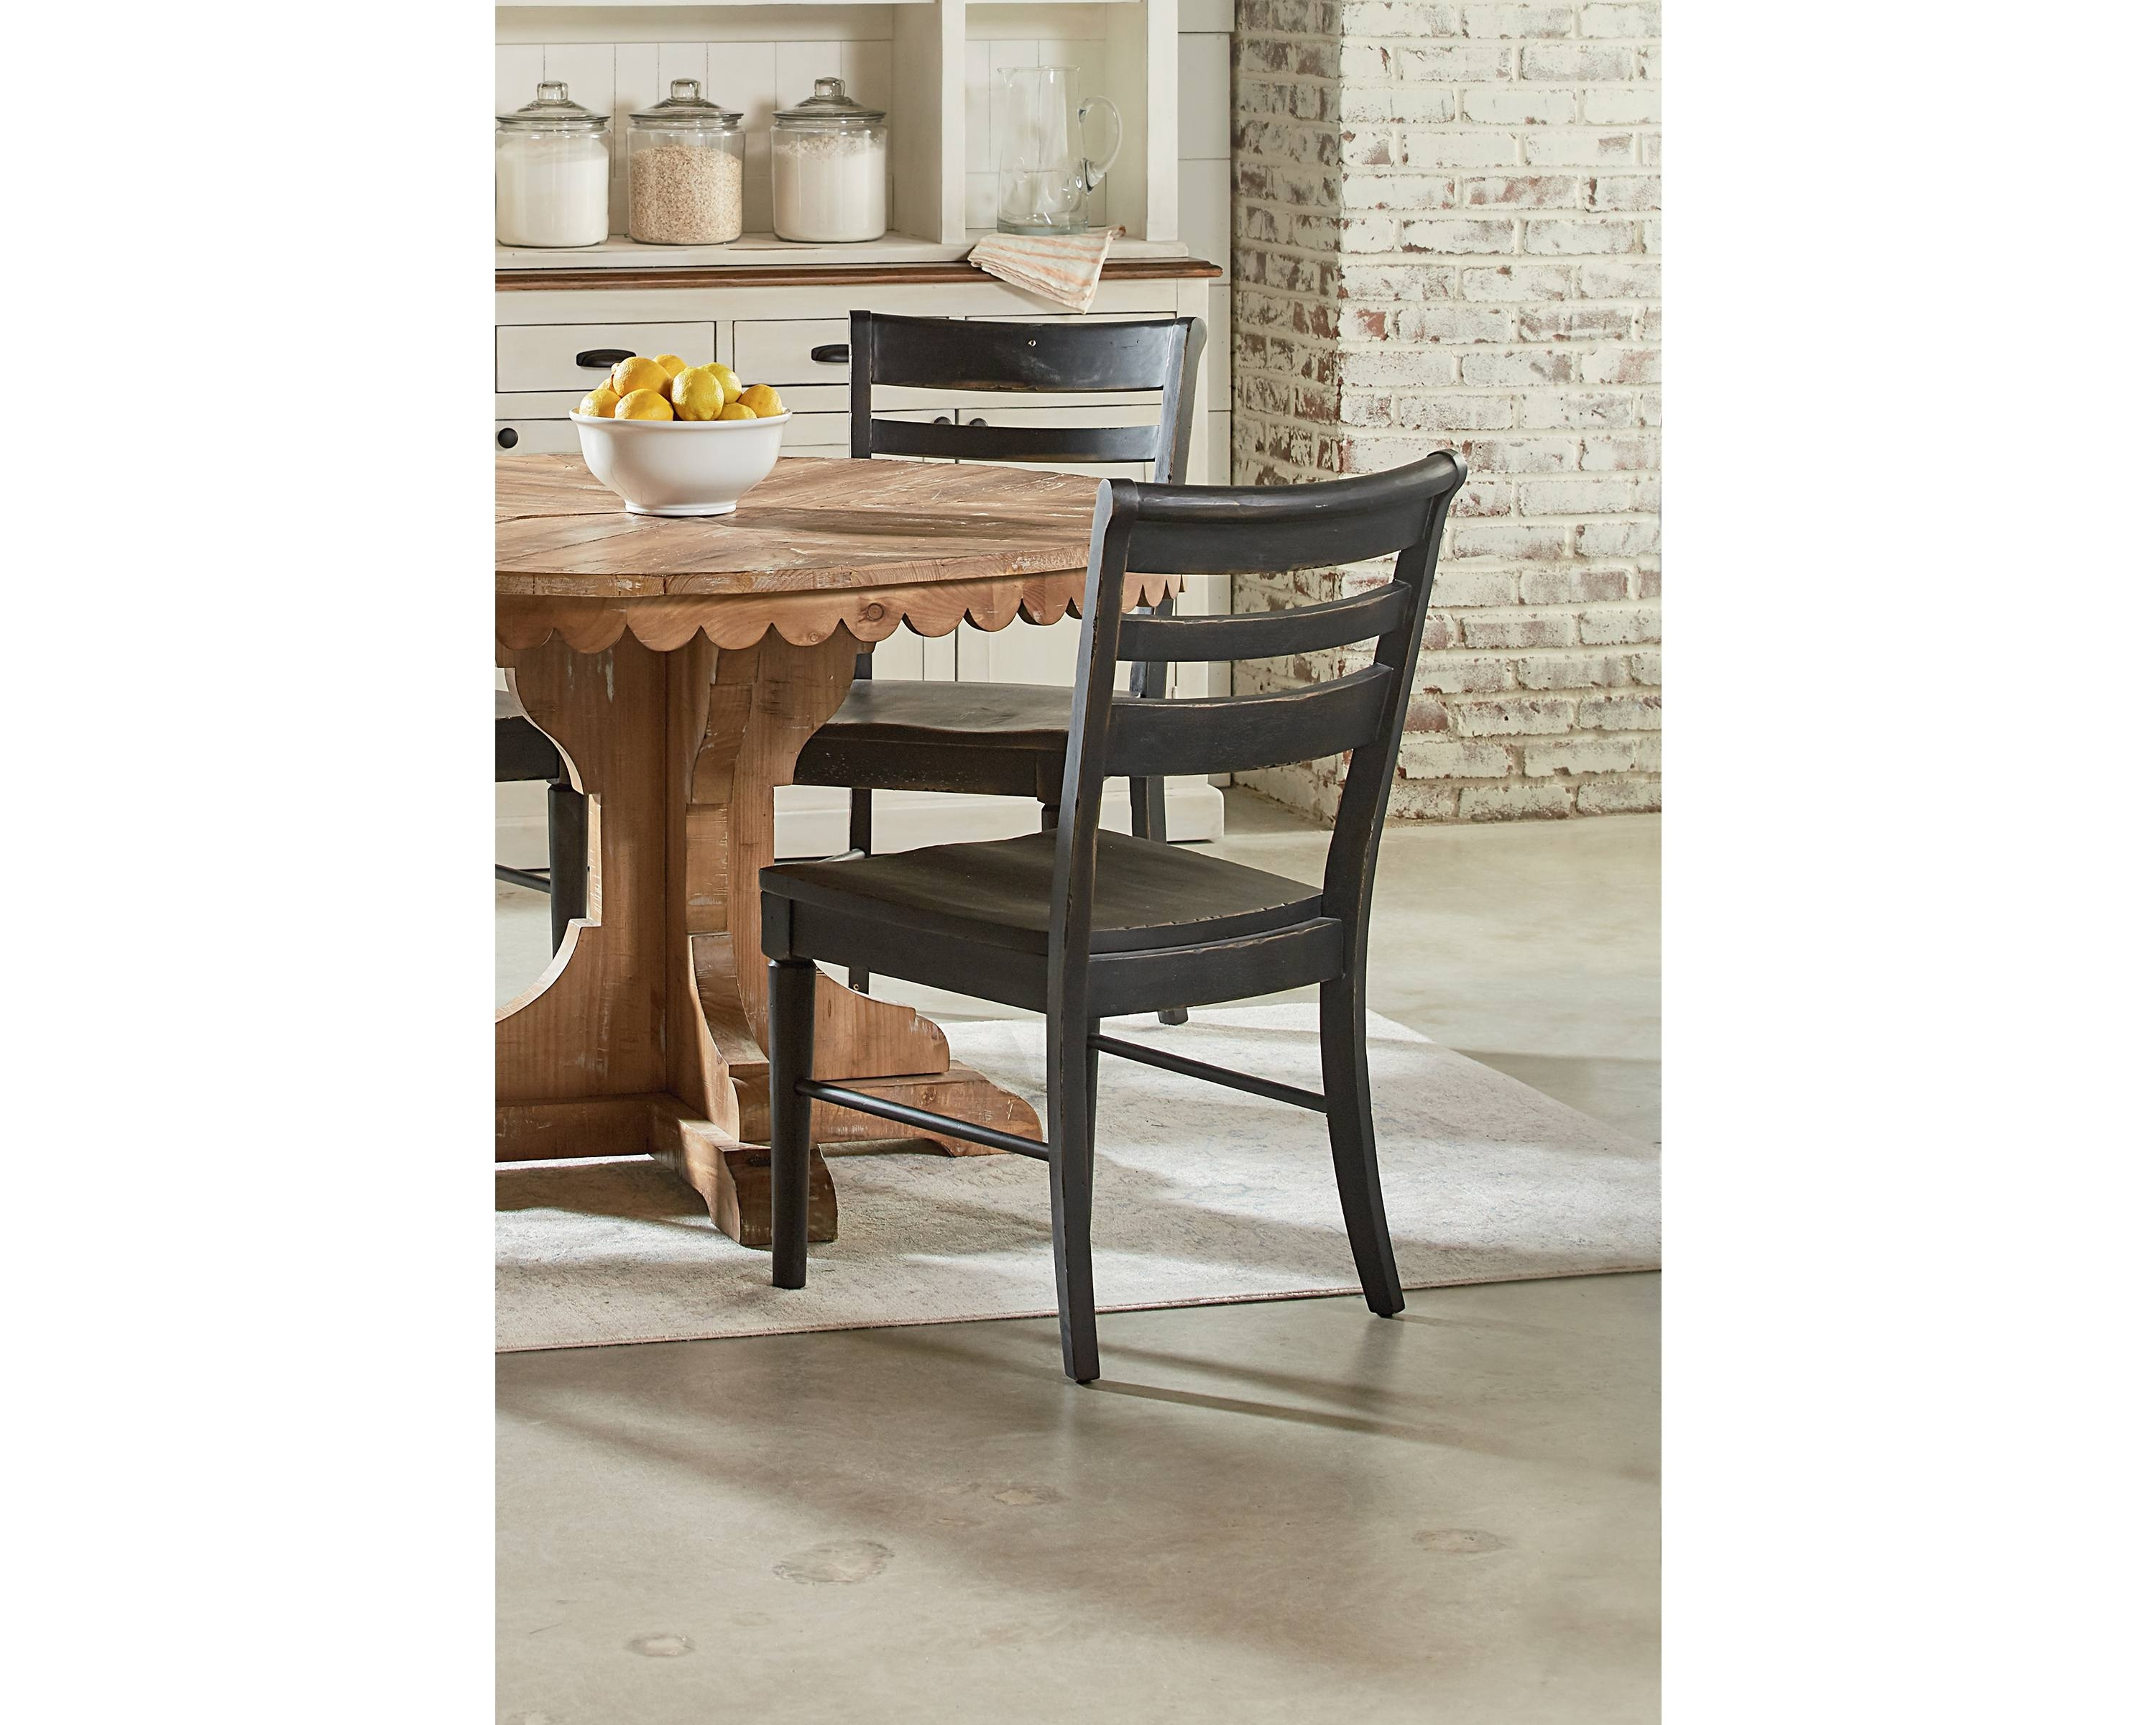 Most Recent Kempton Side Chair – Magnolia Home Throughout Magnolia Home Kempton Bench Side Chairs (#15 of 20)